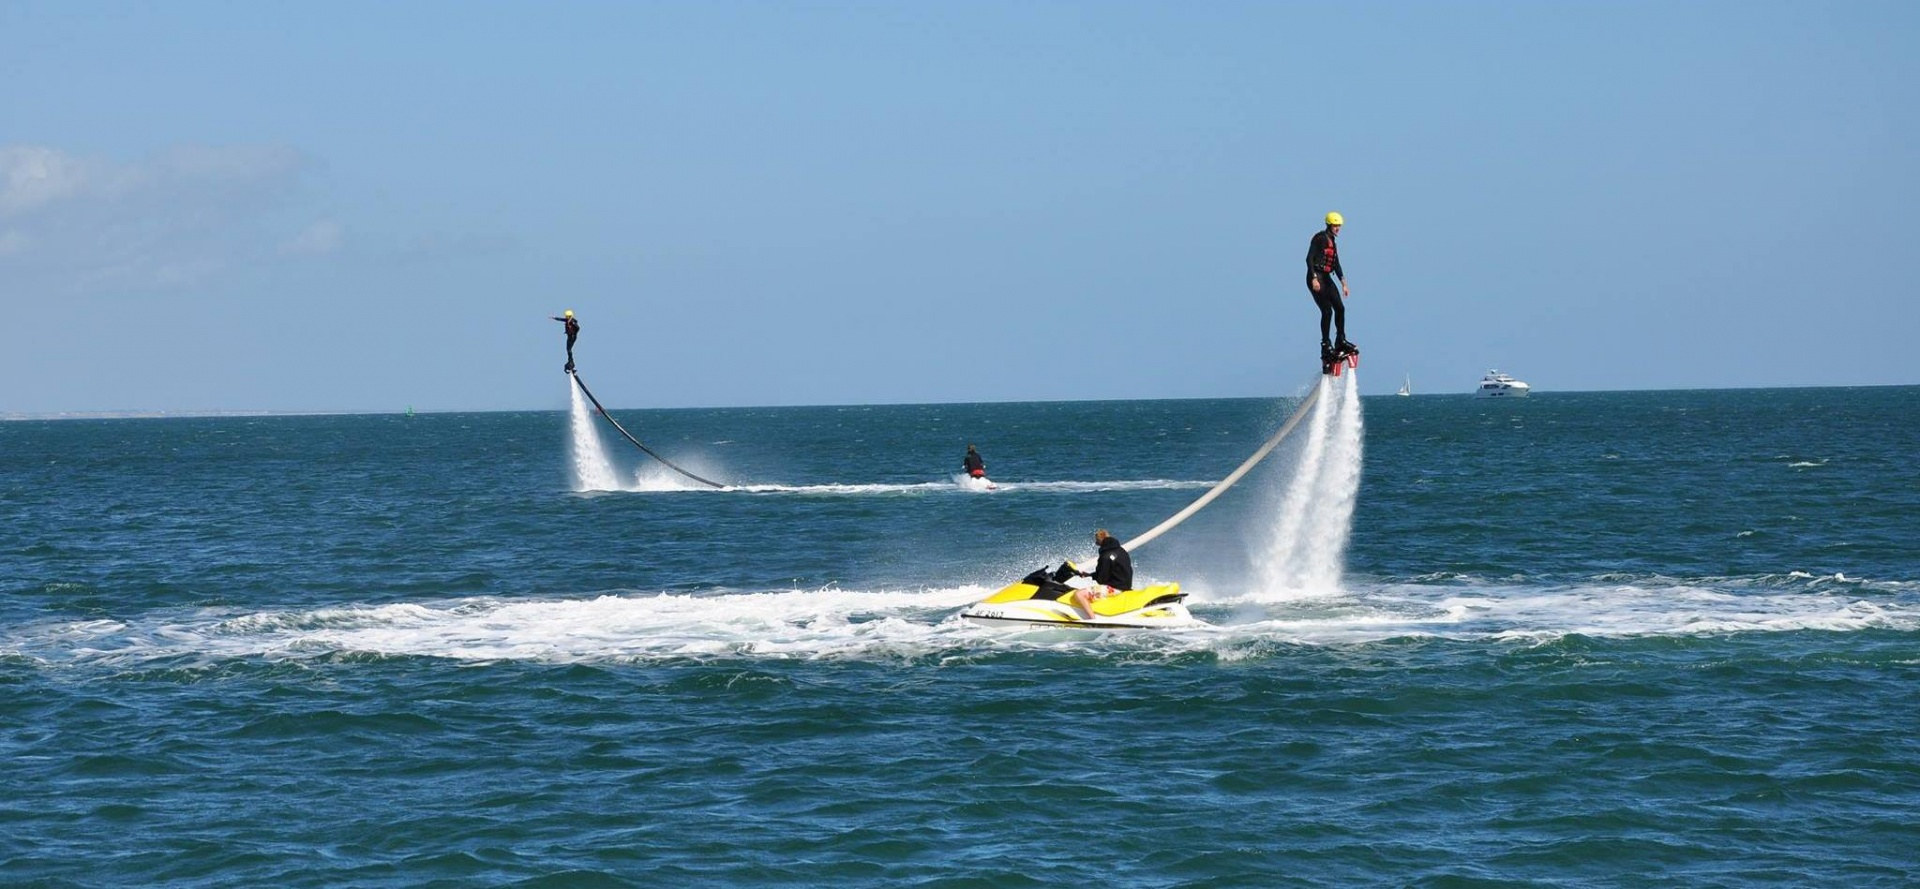 Weekday Flyboarding In Bournemouth - On Sea-3